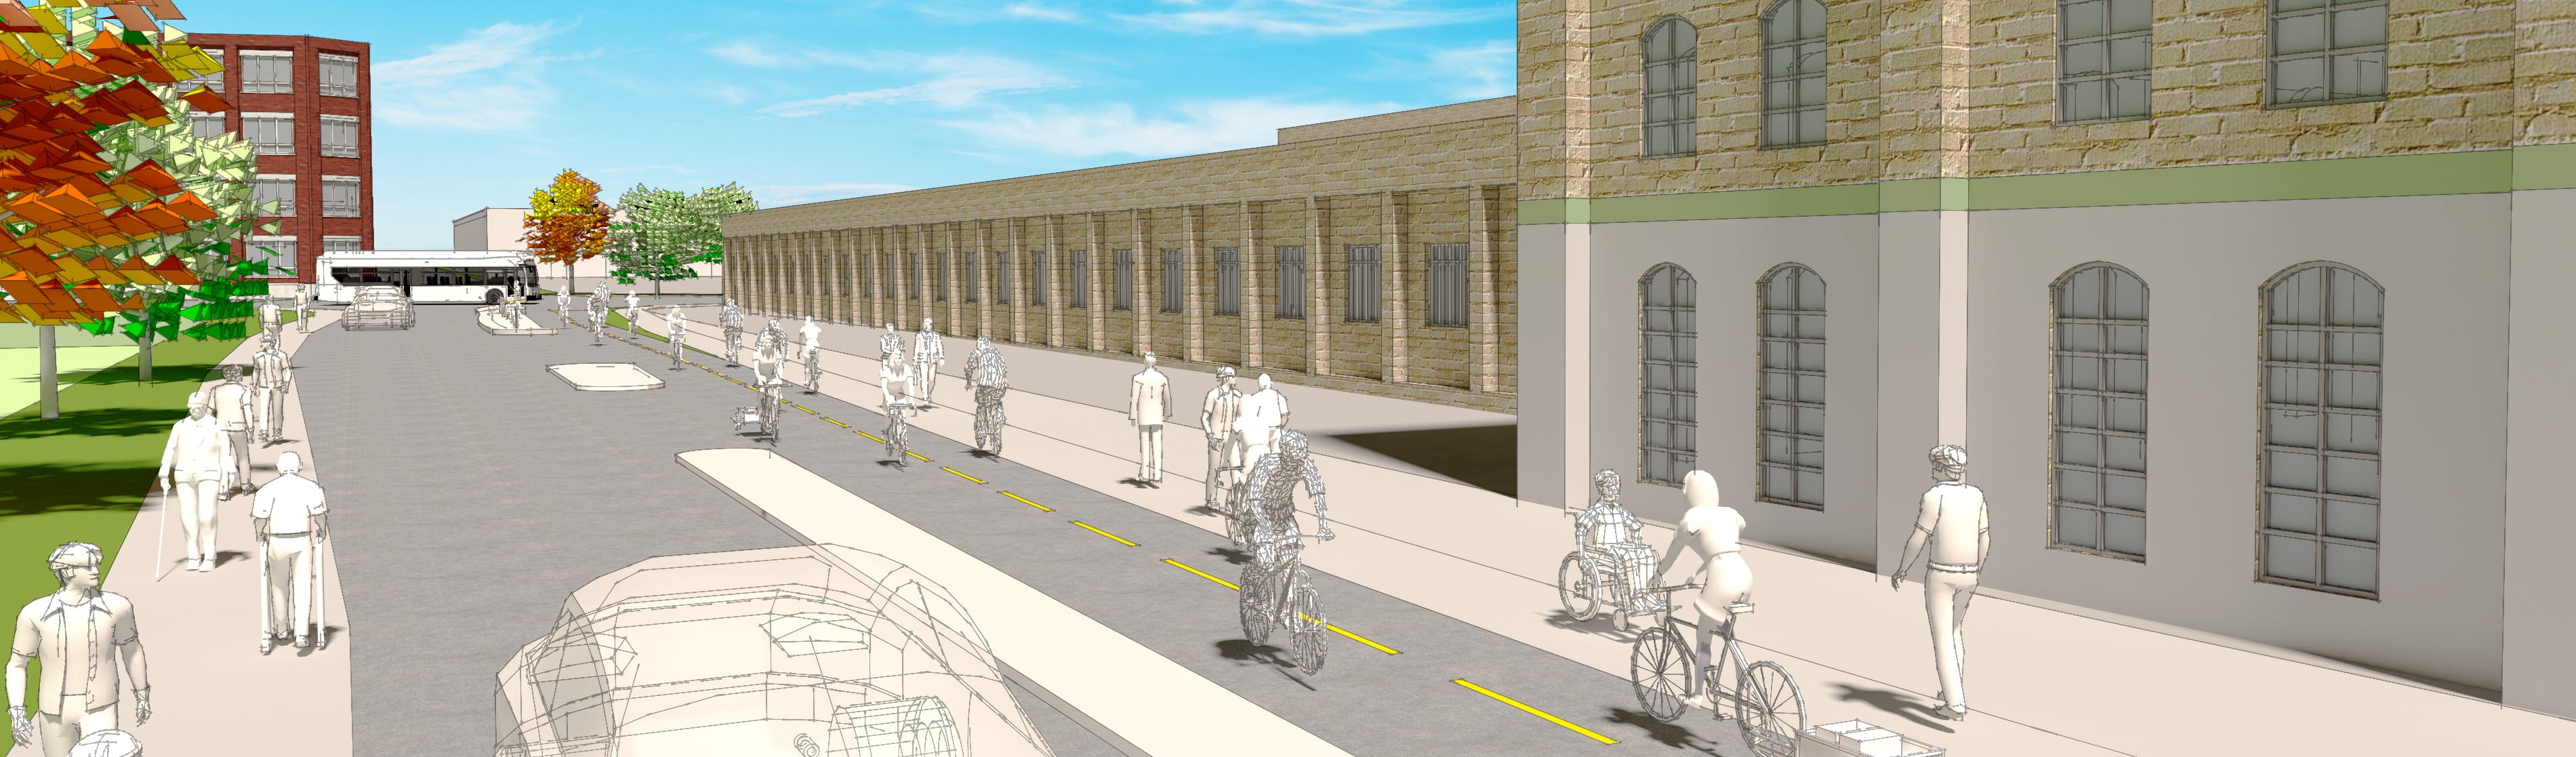 Street rendering of separated bike lanes on Joseph Street